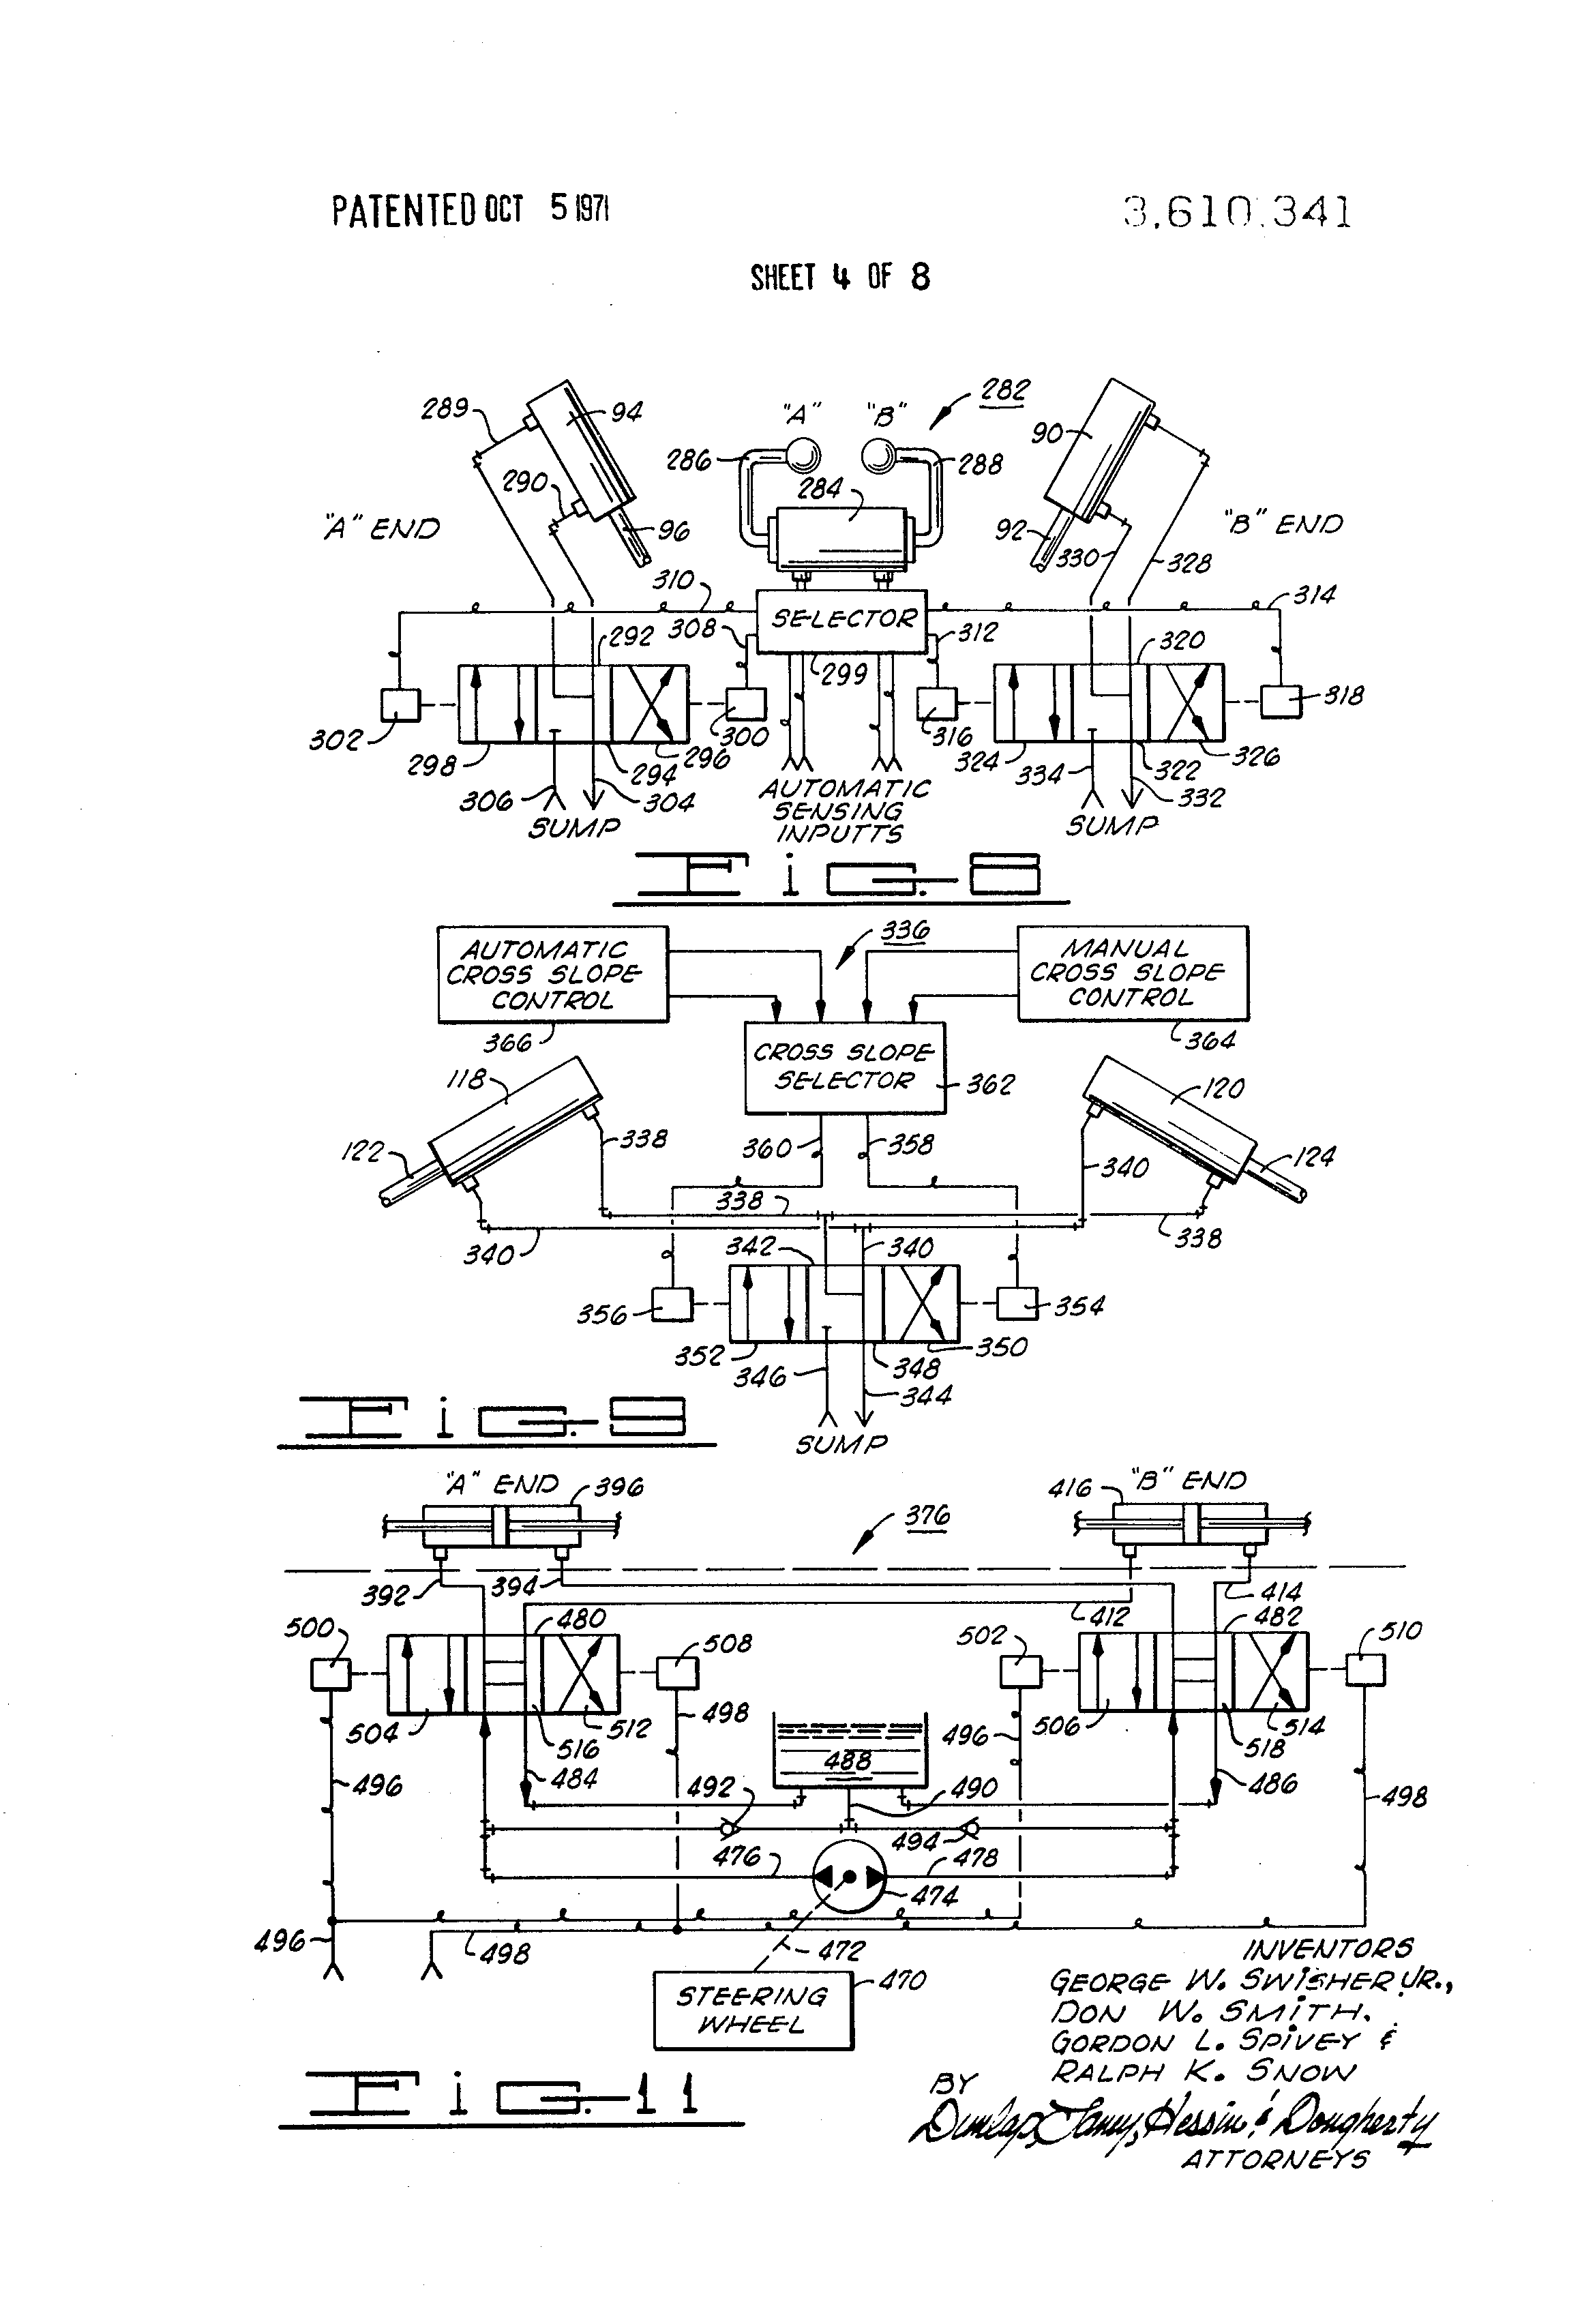 784 international tractor wiring diagram 6 volt system Diesel Tractor  Wiring Diagram 1942 Farmall H Wiring